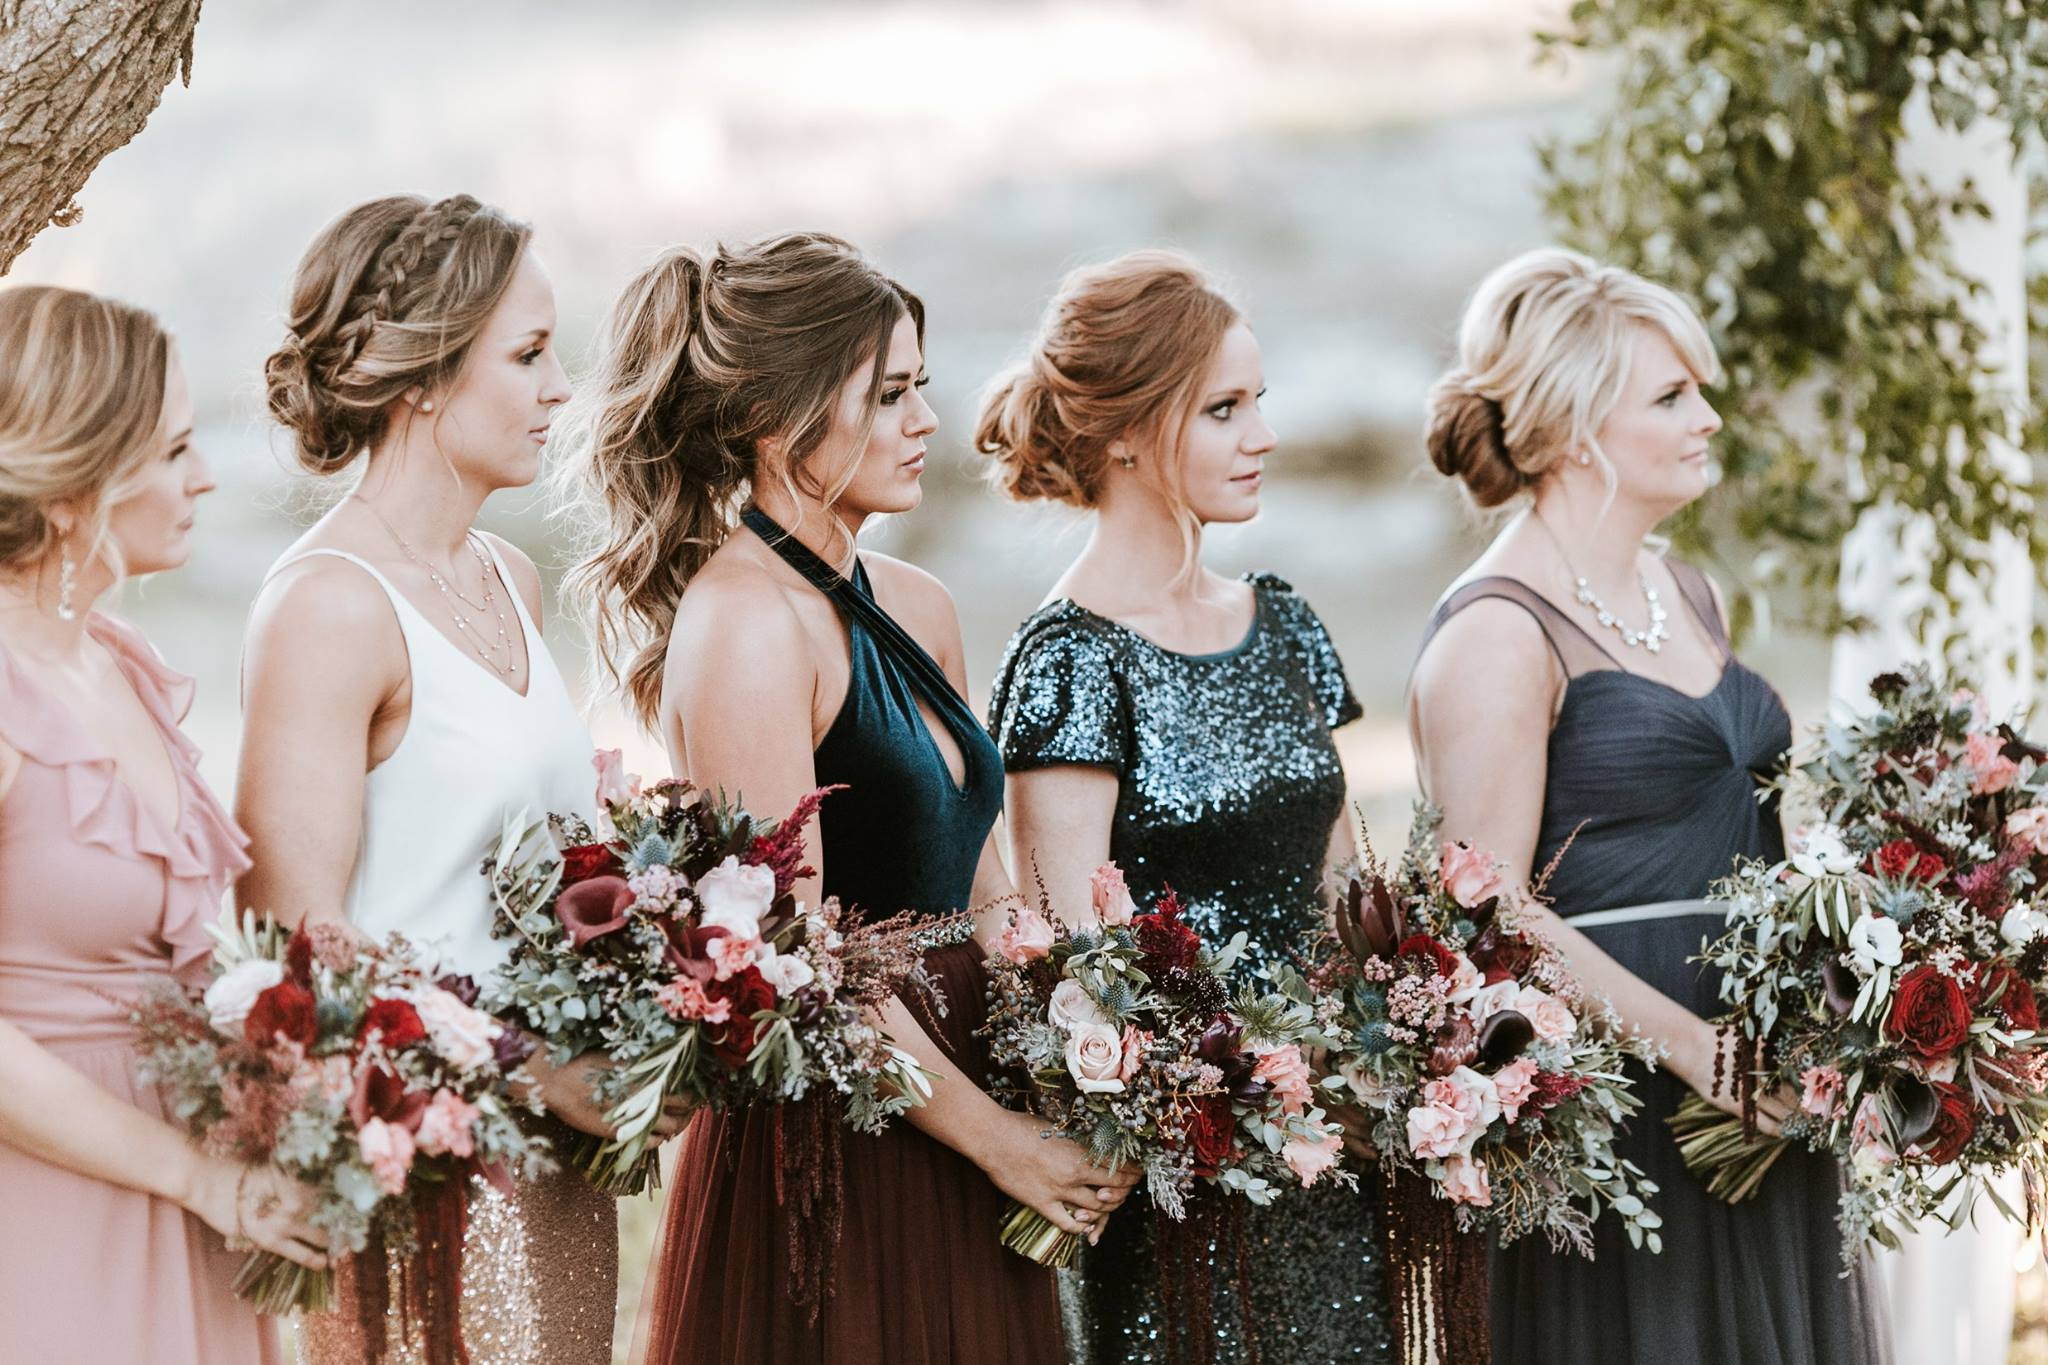 jojo fletcher and revelry bridesmaids standing next to bride during ceremony.